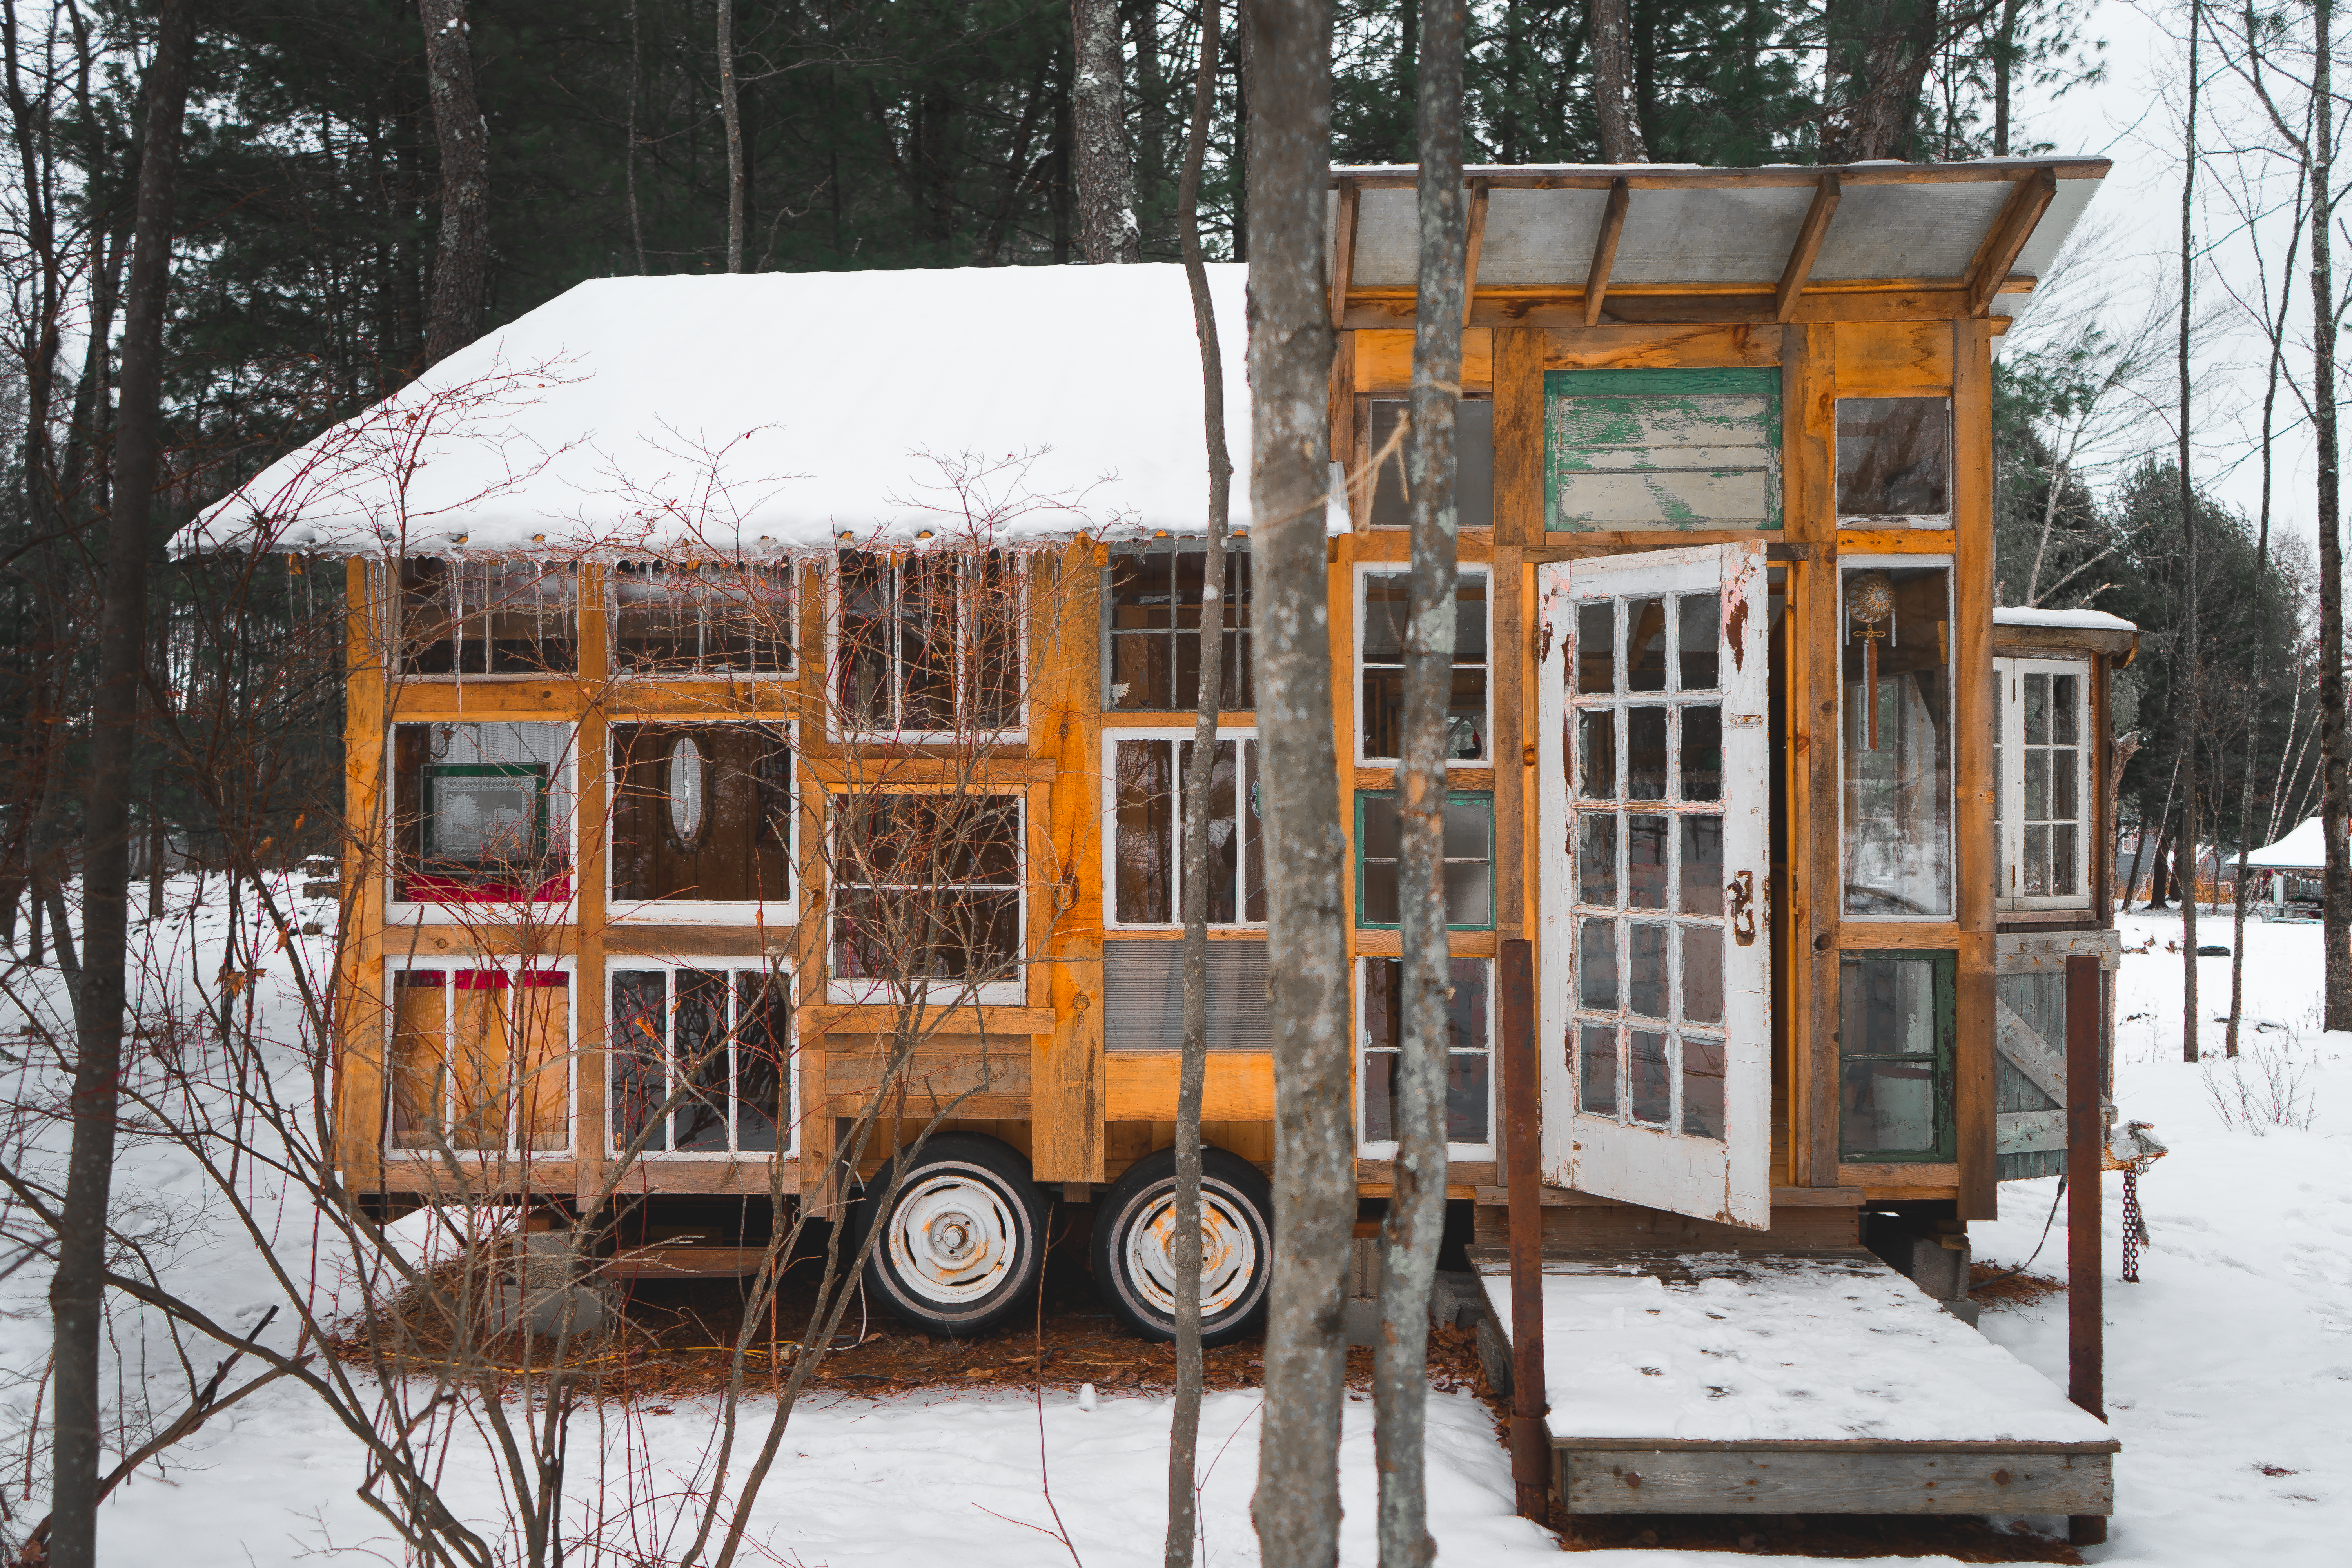 house dining ny upstate area cabin vacation small kitchen catskills bungalow cabins rent tiny rental weekend